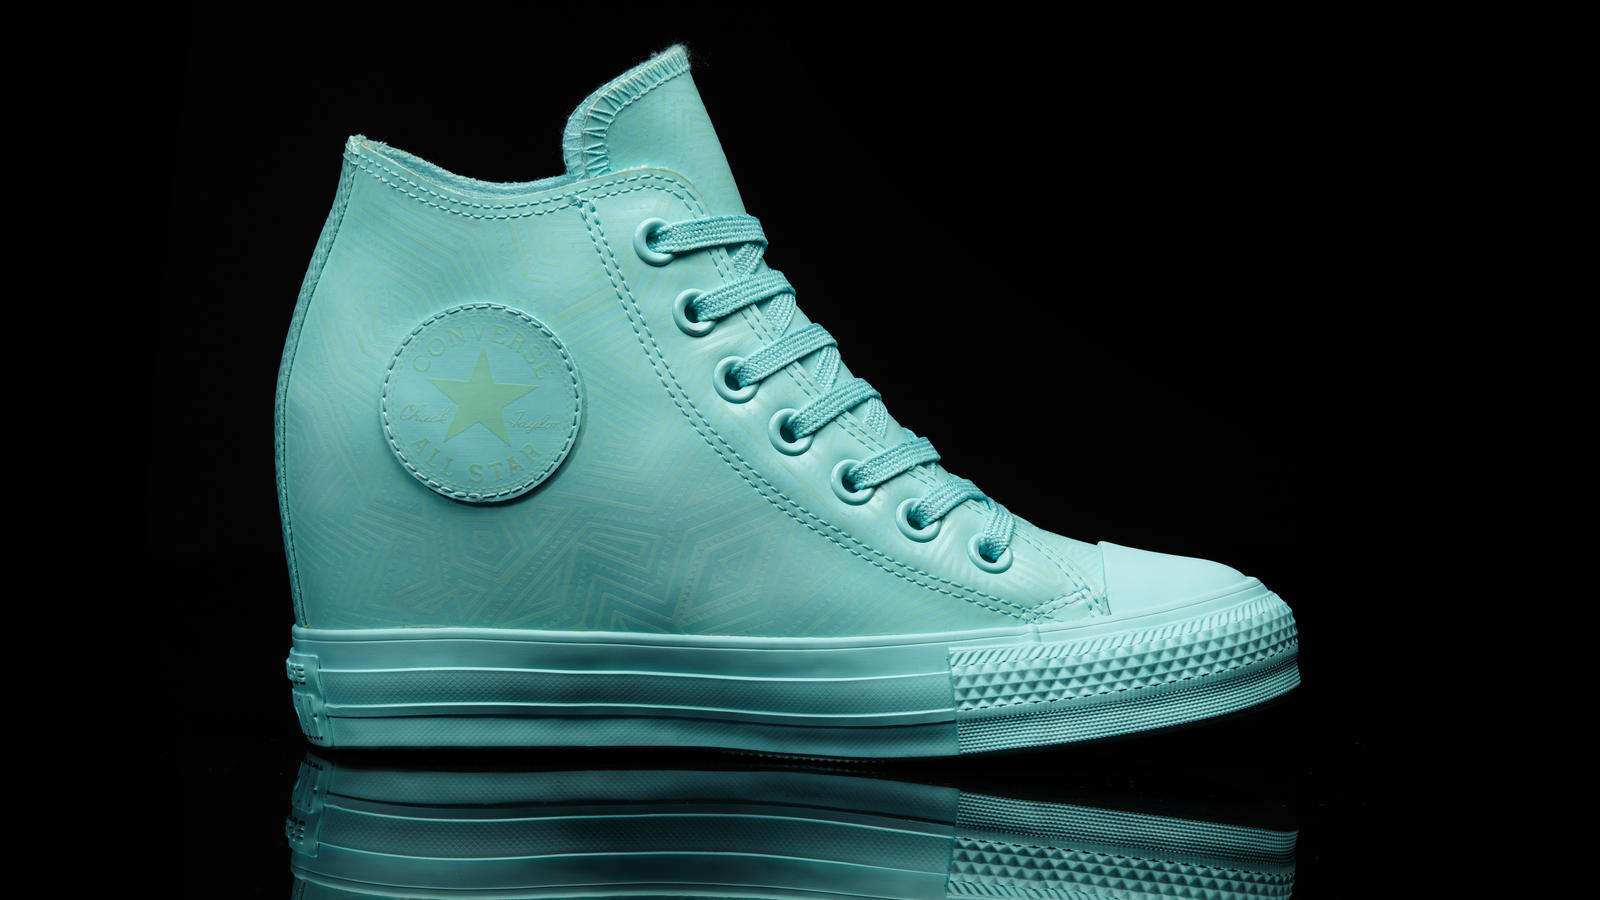 Discussion on this topic: Converse Launches Glow In The Dark Converse , converse-launches-glow-in-the-dark-converse/